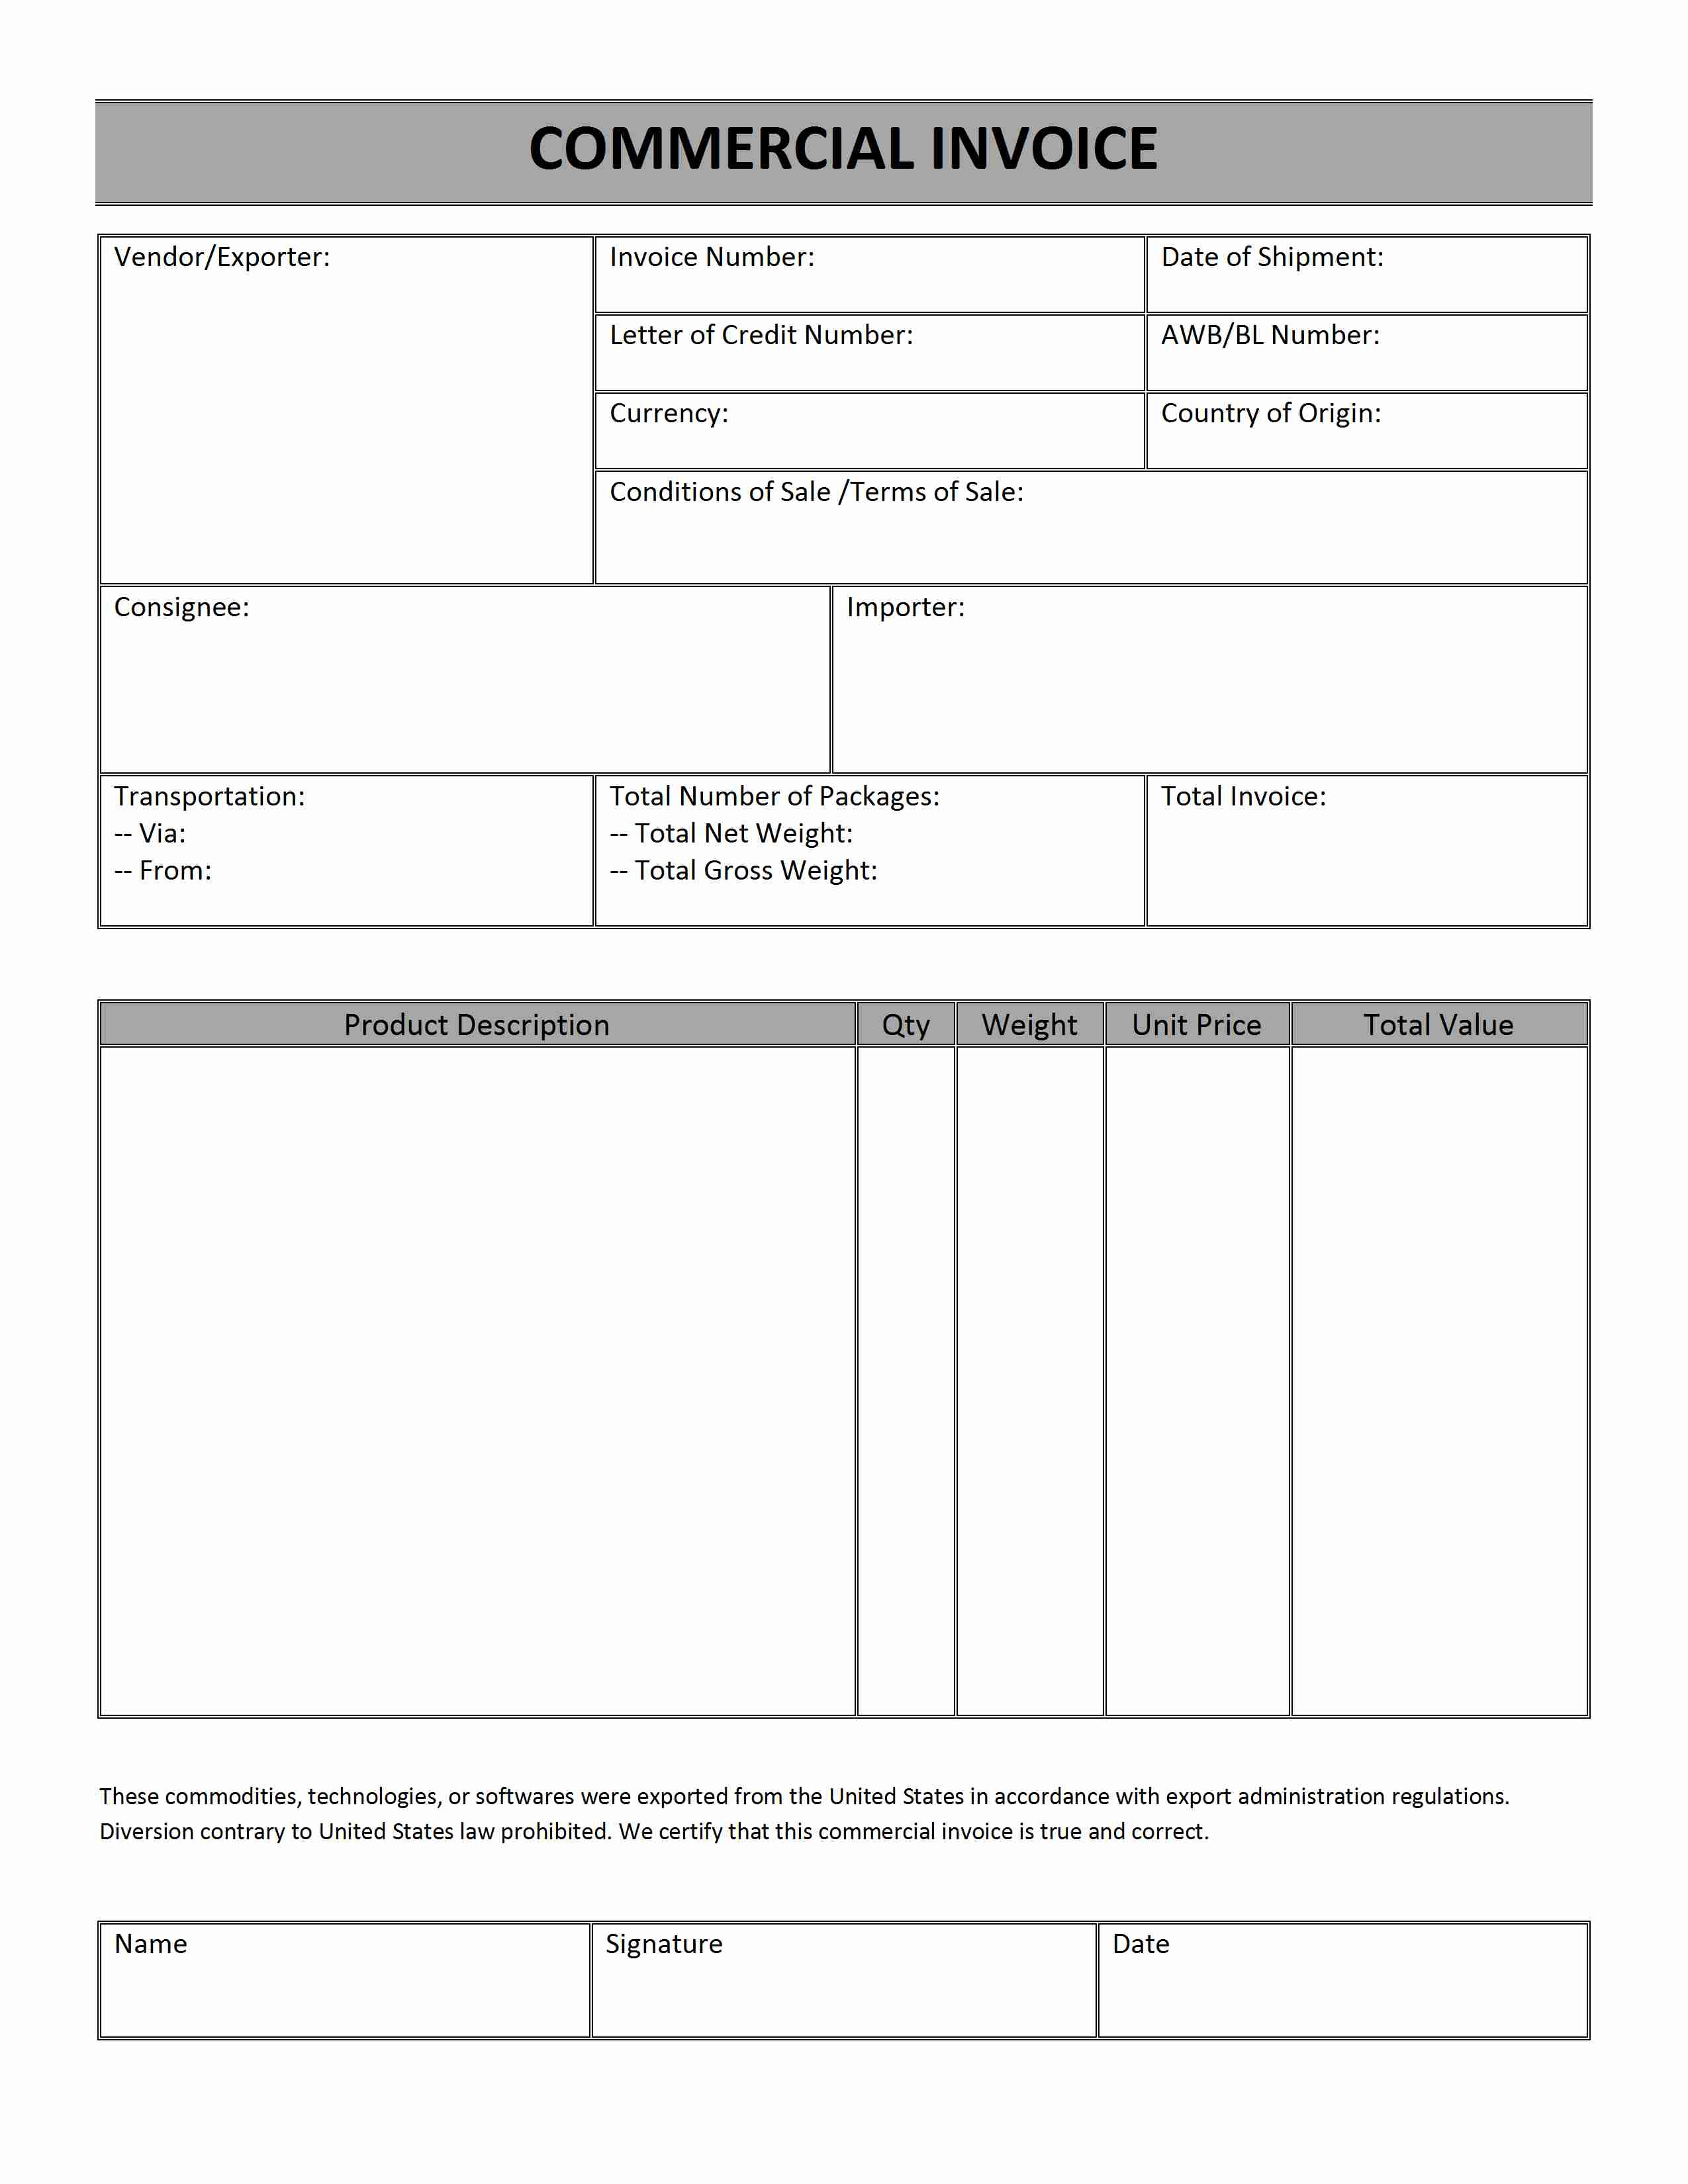 Reliefworkersus  Fascinating Printable Sales Invoice Simple Invoice Form Free Invoice  With Exciting Printable Receipt Free  Free Printable Raffle Tickets  Receipt   Printable With Extraordinary Preliminary Invoice Also Audi Q Invoice Price In Addition How To Get Dealer Invoice Price And How To Make An Invoice In Google Docs As Well As Invoice Stamps Additionally What Are Invoices In Business From Happytomco With Reliefworkersus  Exciting Printable Sales Invoice Simple Invoice Form Free Invoice  With Extraordinary Printable Receipt Free  Free Printable Raffle Tickets  Receipt   Printable And Fascinating Preliminary Invoice Also Audi Q Invoice Price In Addition How To Get Dealer Invoice Price From Happytomco